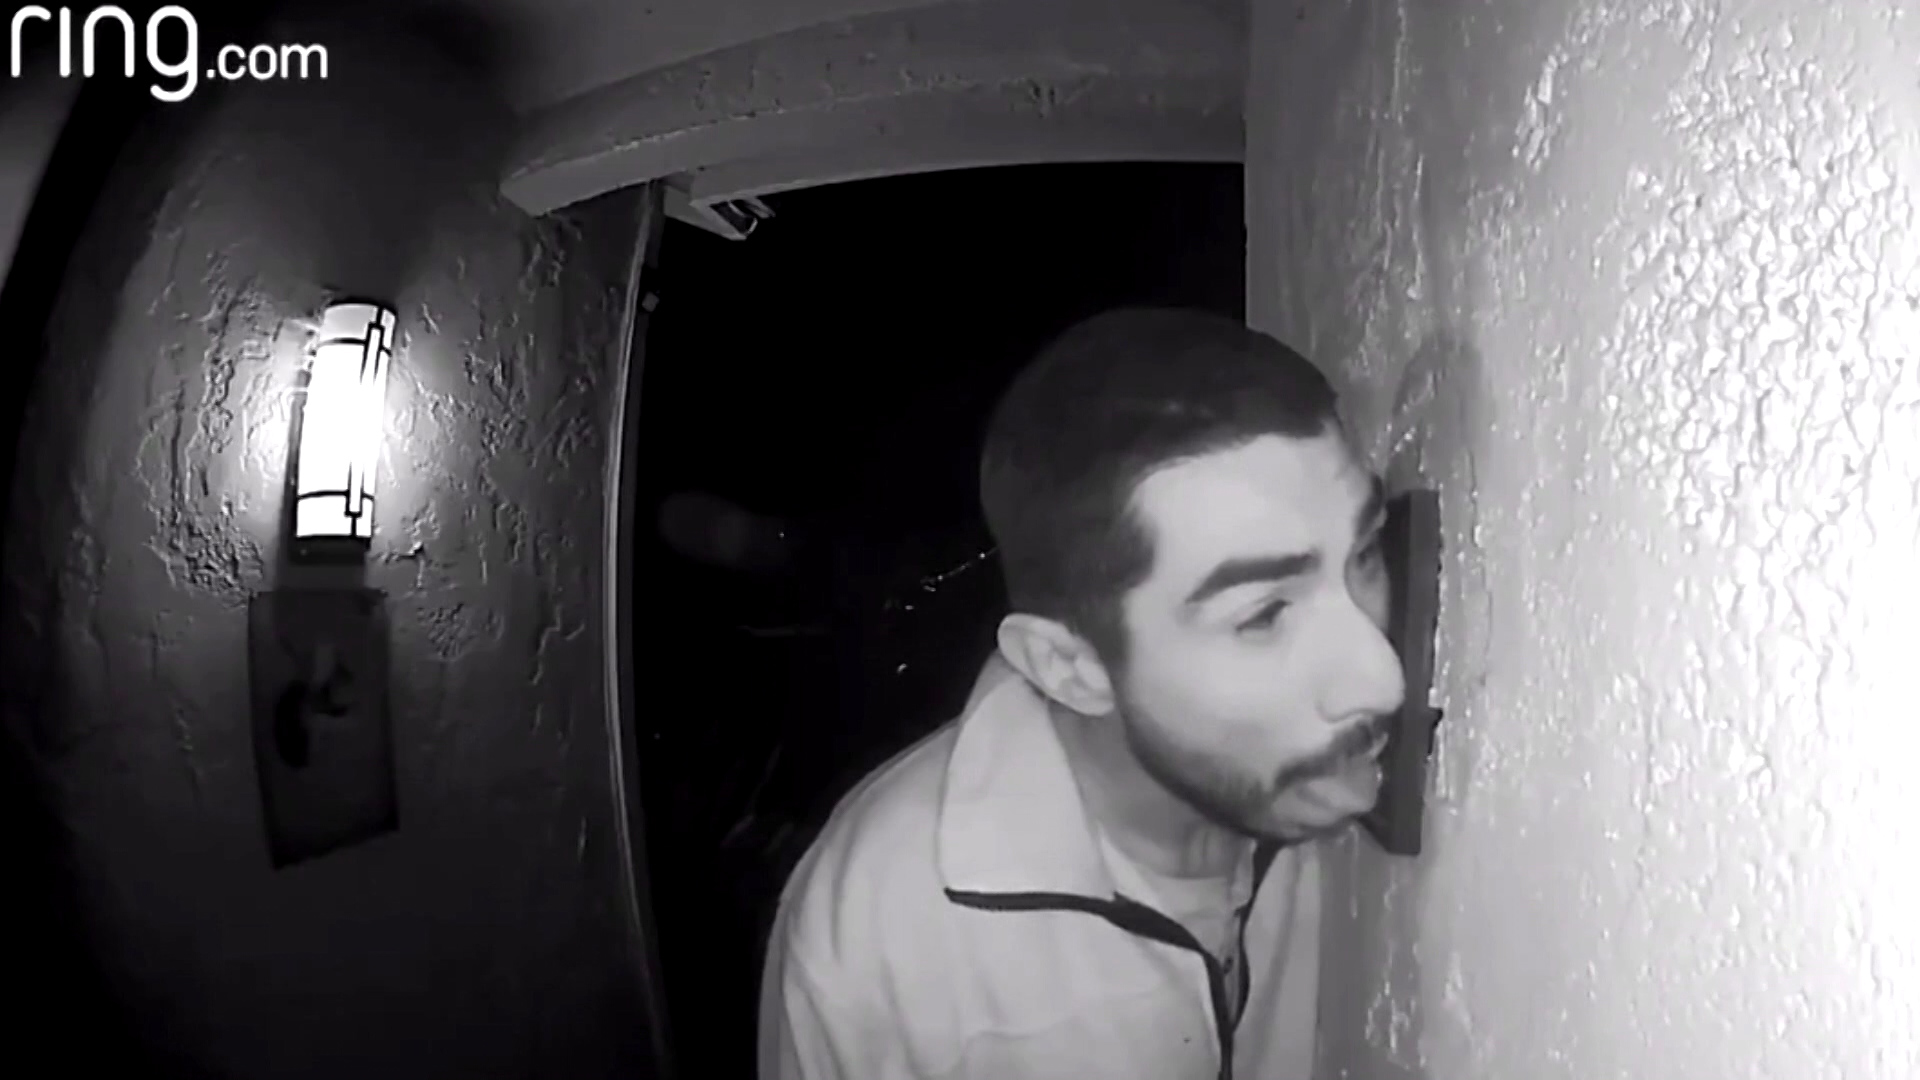 Security Camera Catches Prowling Suspect Licking Doorbell For 3 Hours